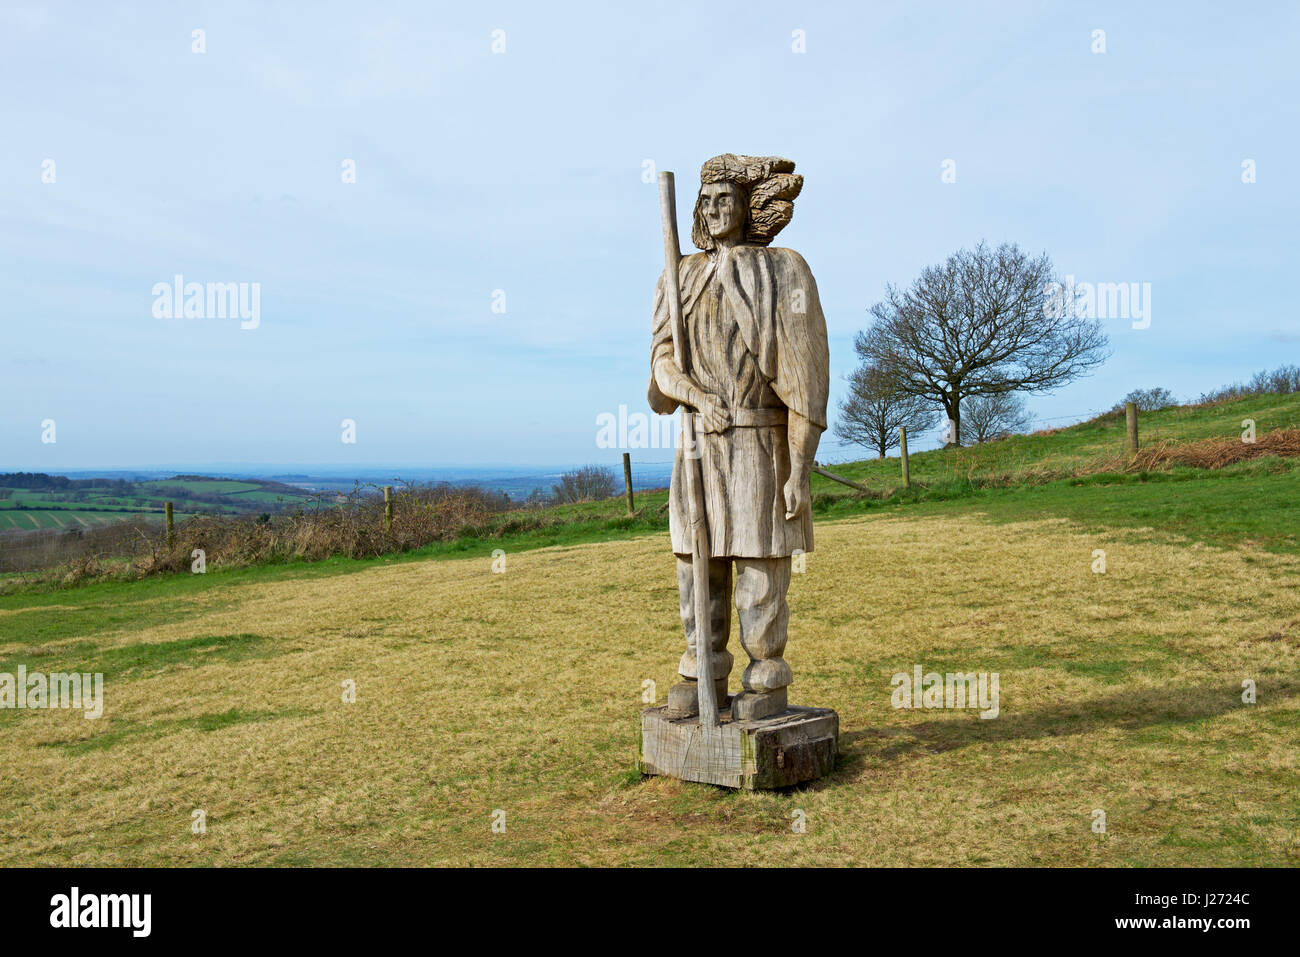 Carved wooden figure, Bradgate Park, Charnwood Forest, Leicestershire, England UK - Stock Image